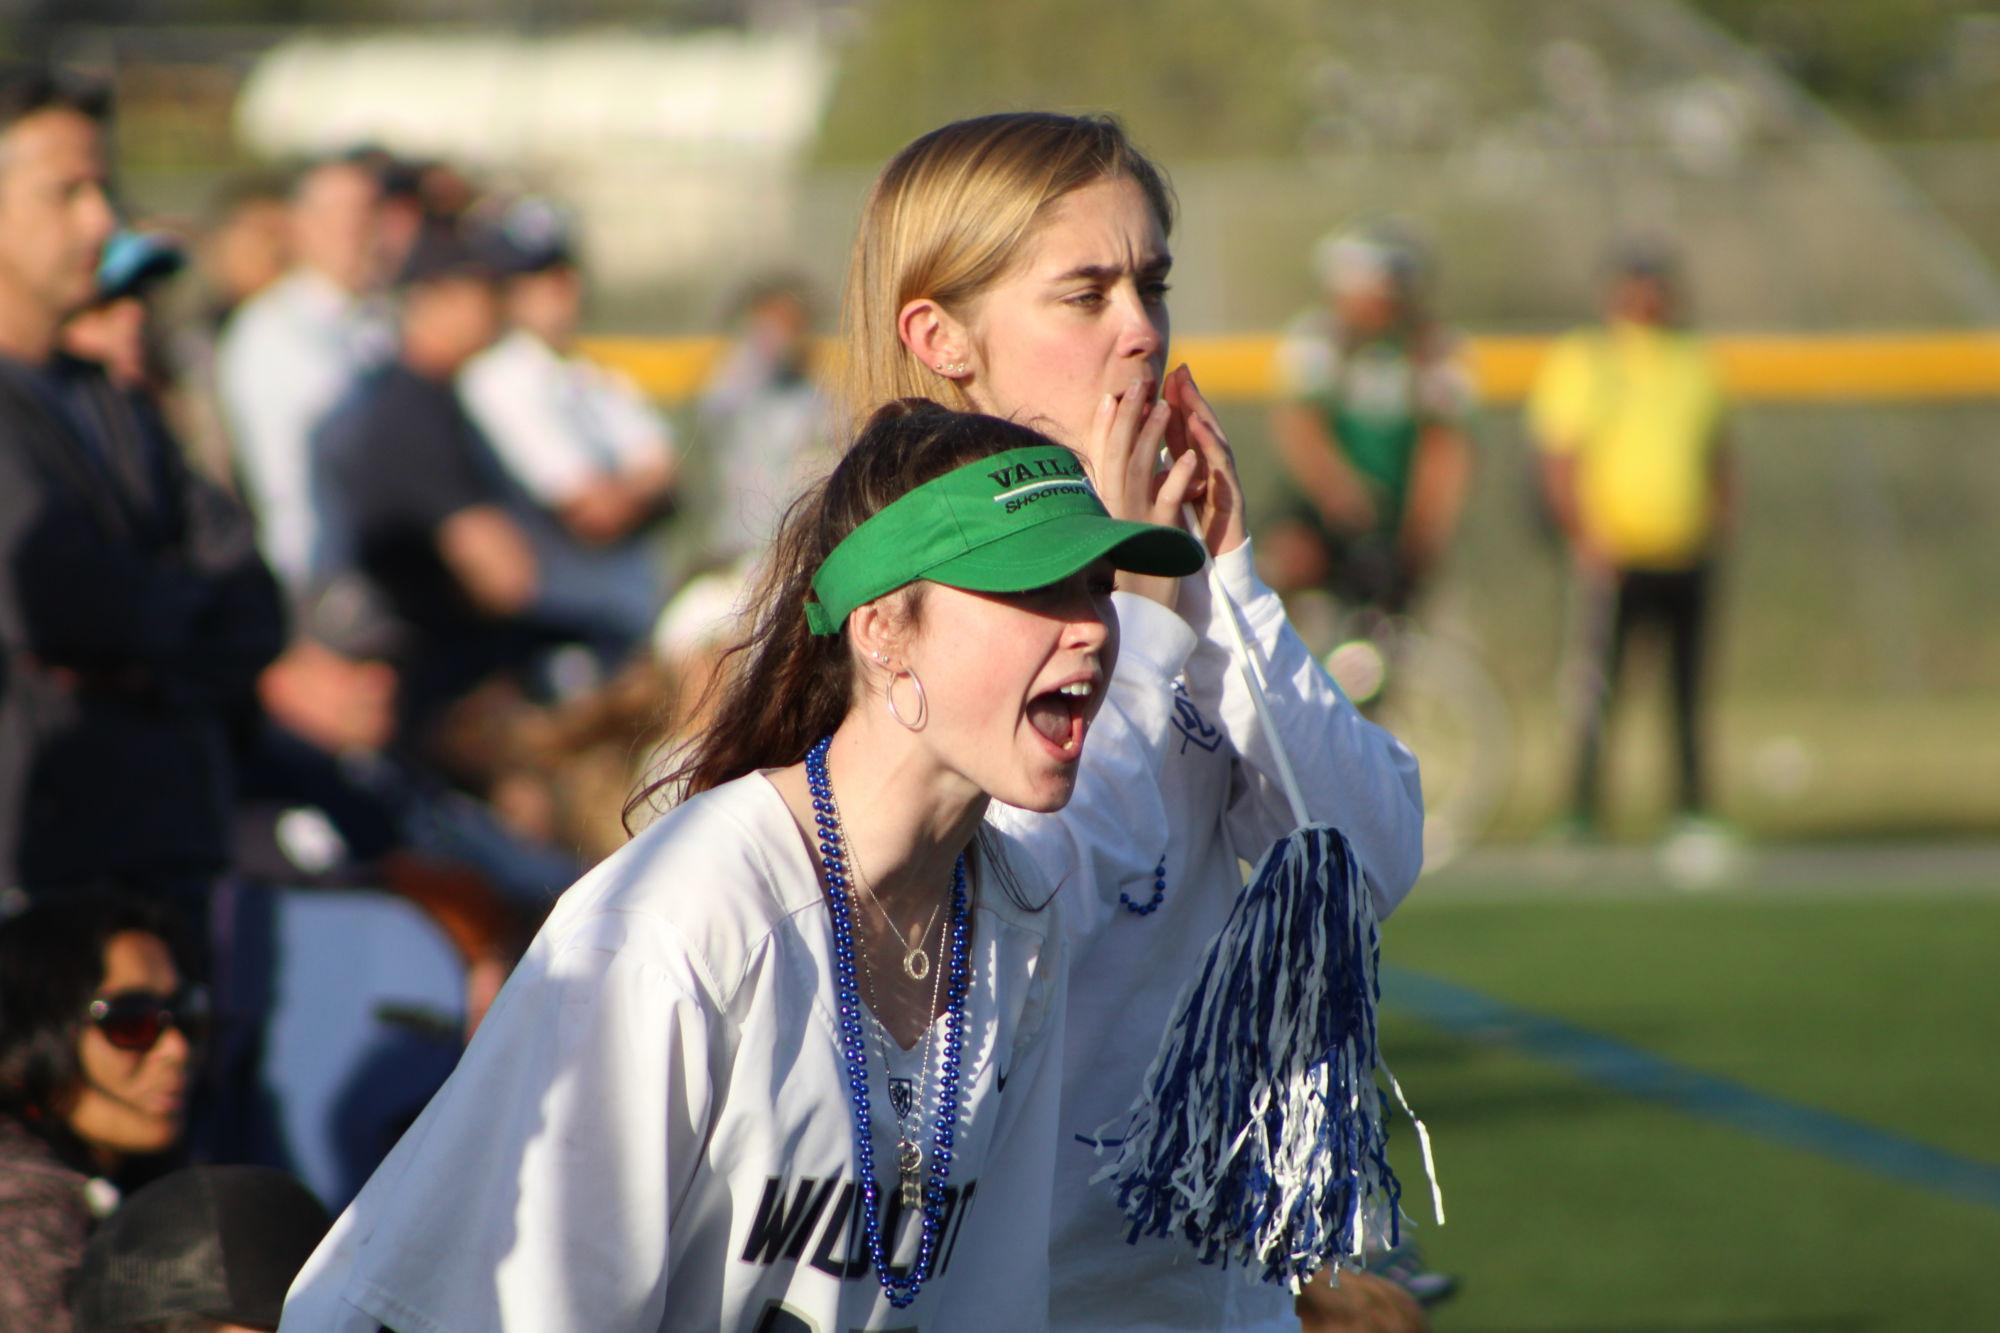 Two+students+from+Marin+Catholic+yell+at+the+players+from+the+sidelines.